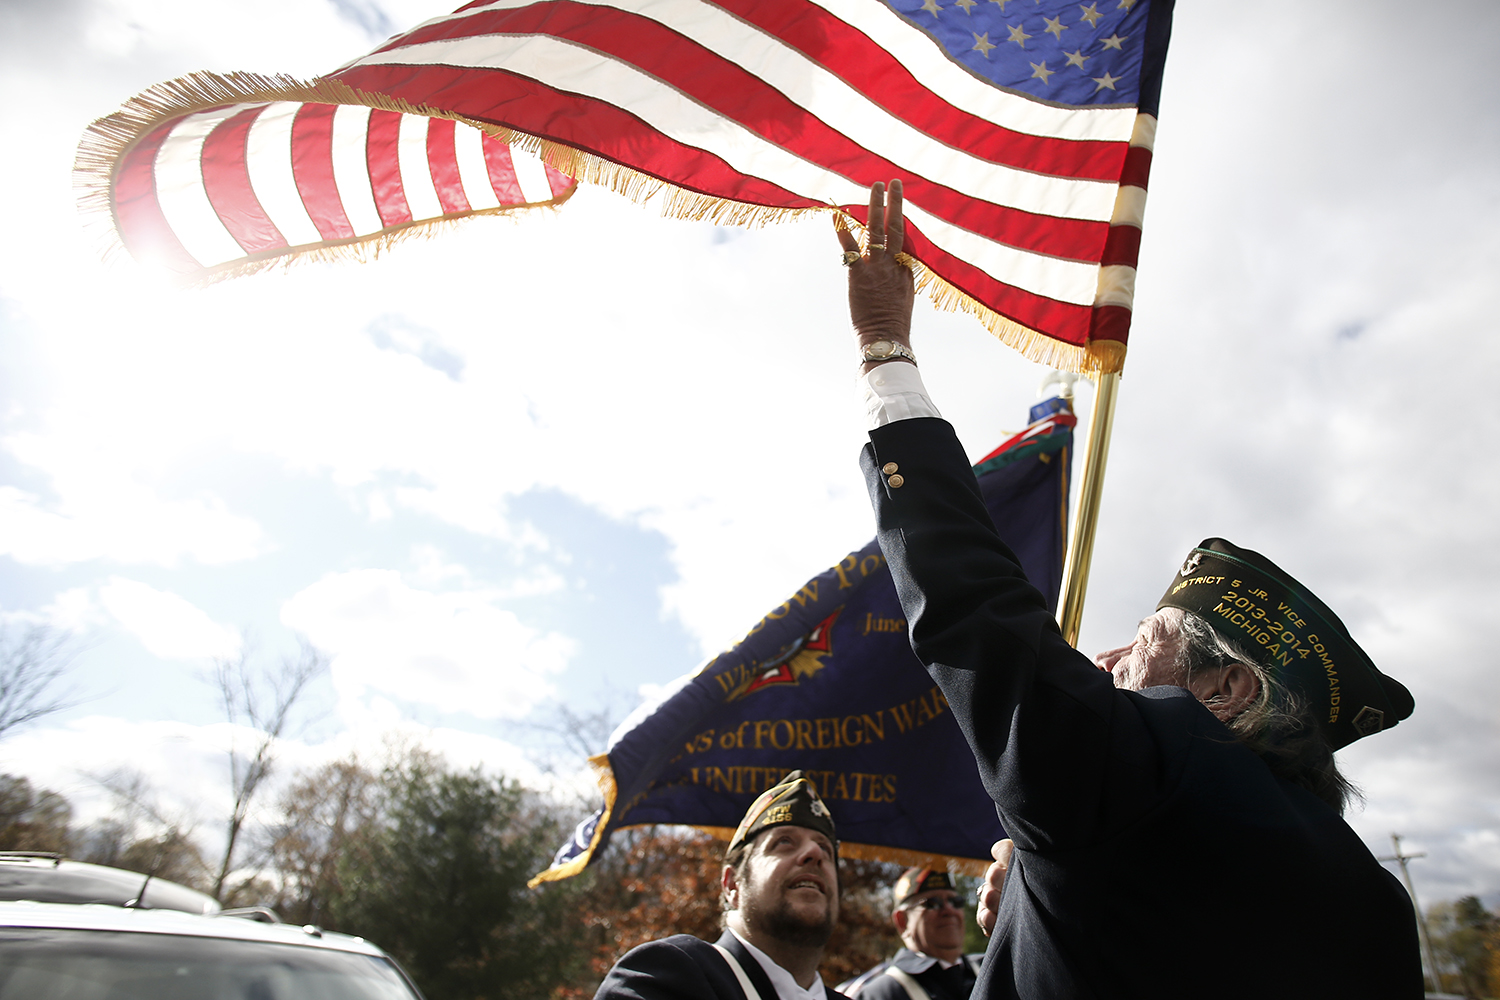 Scott Gloger from Brighton, right, tries to grab the flag while Darrell Poole from Wixom looks up on Sunday, Nov. 10, 2013 at the White Lake Cemetery in White Lake.